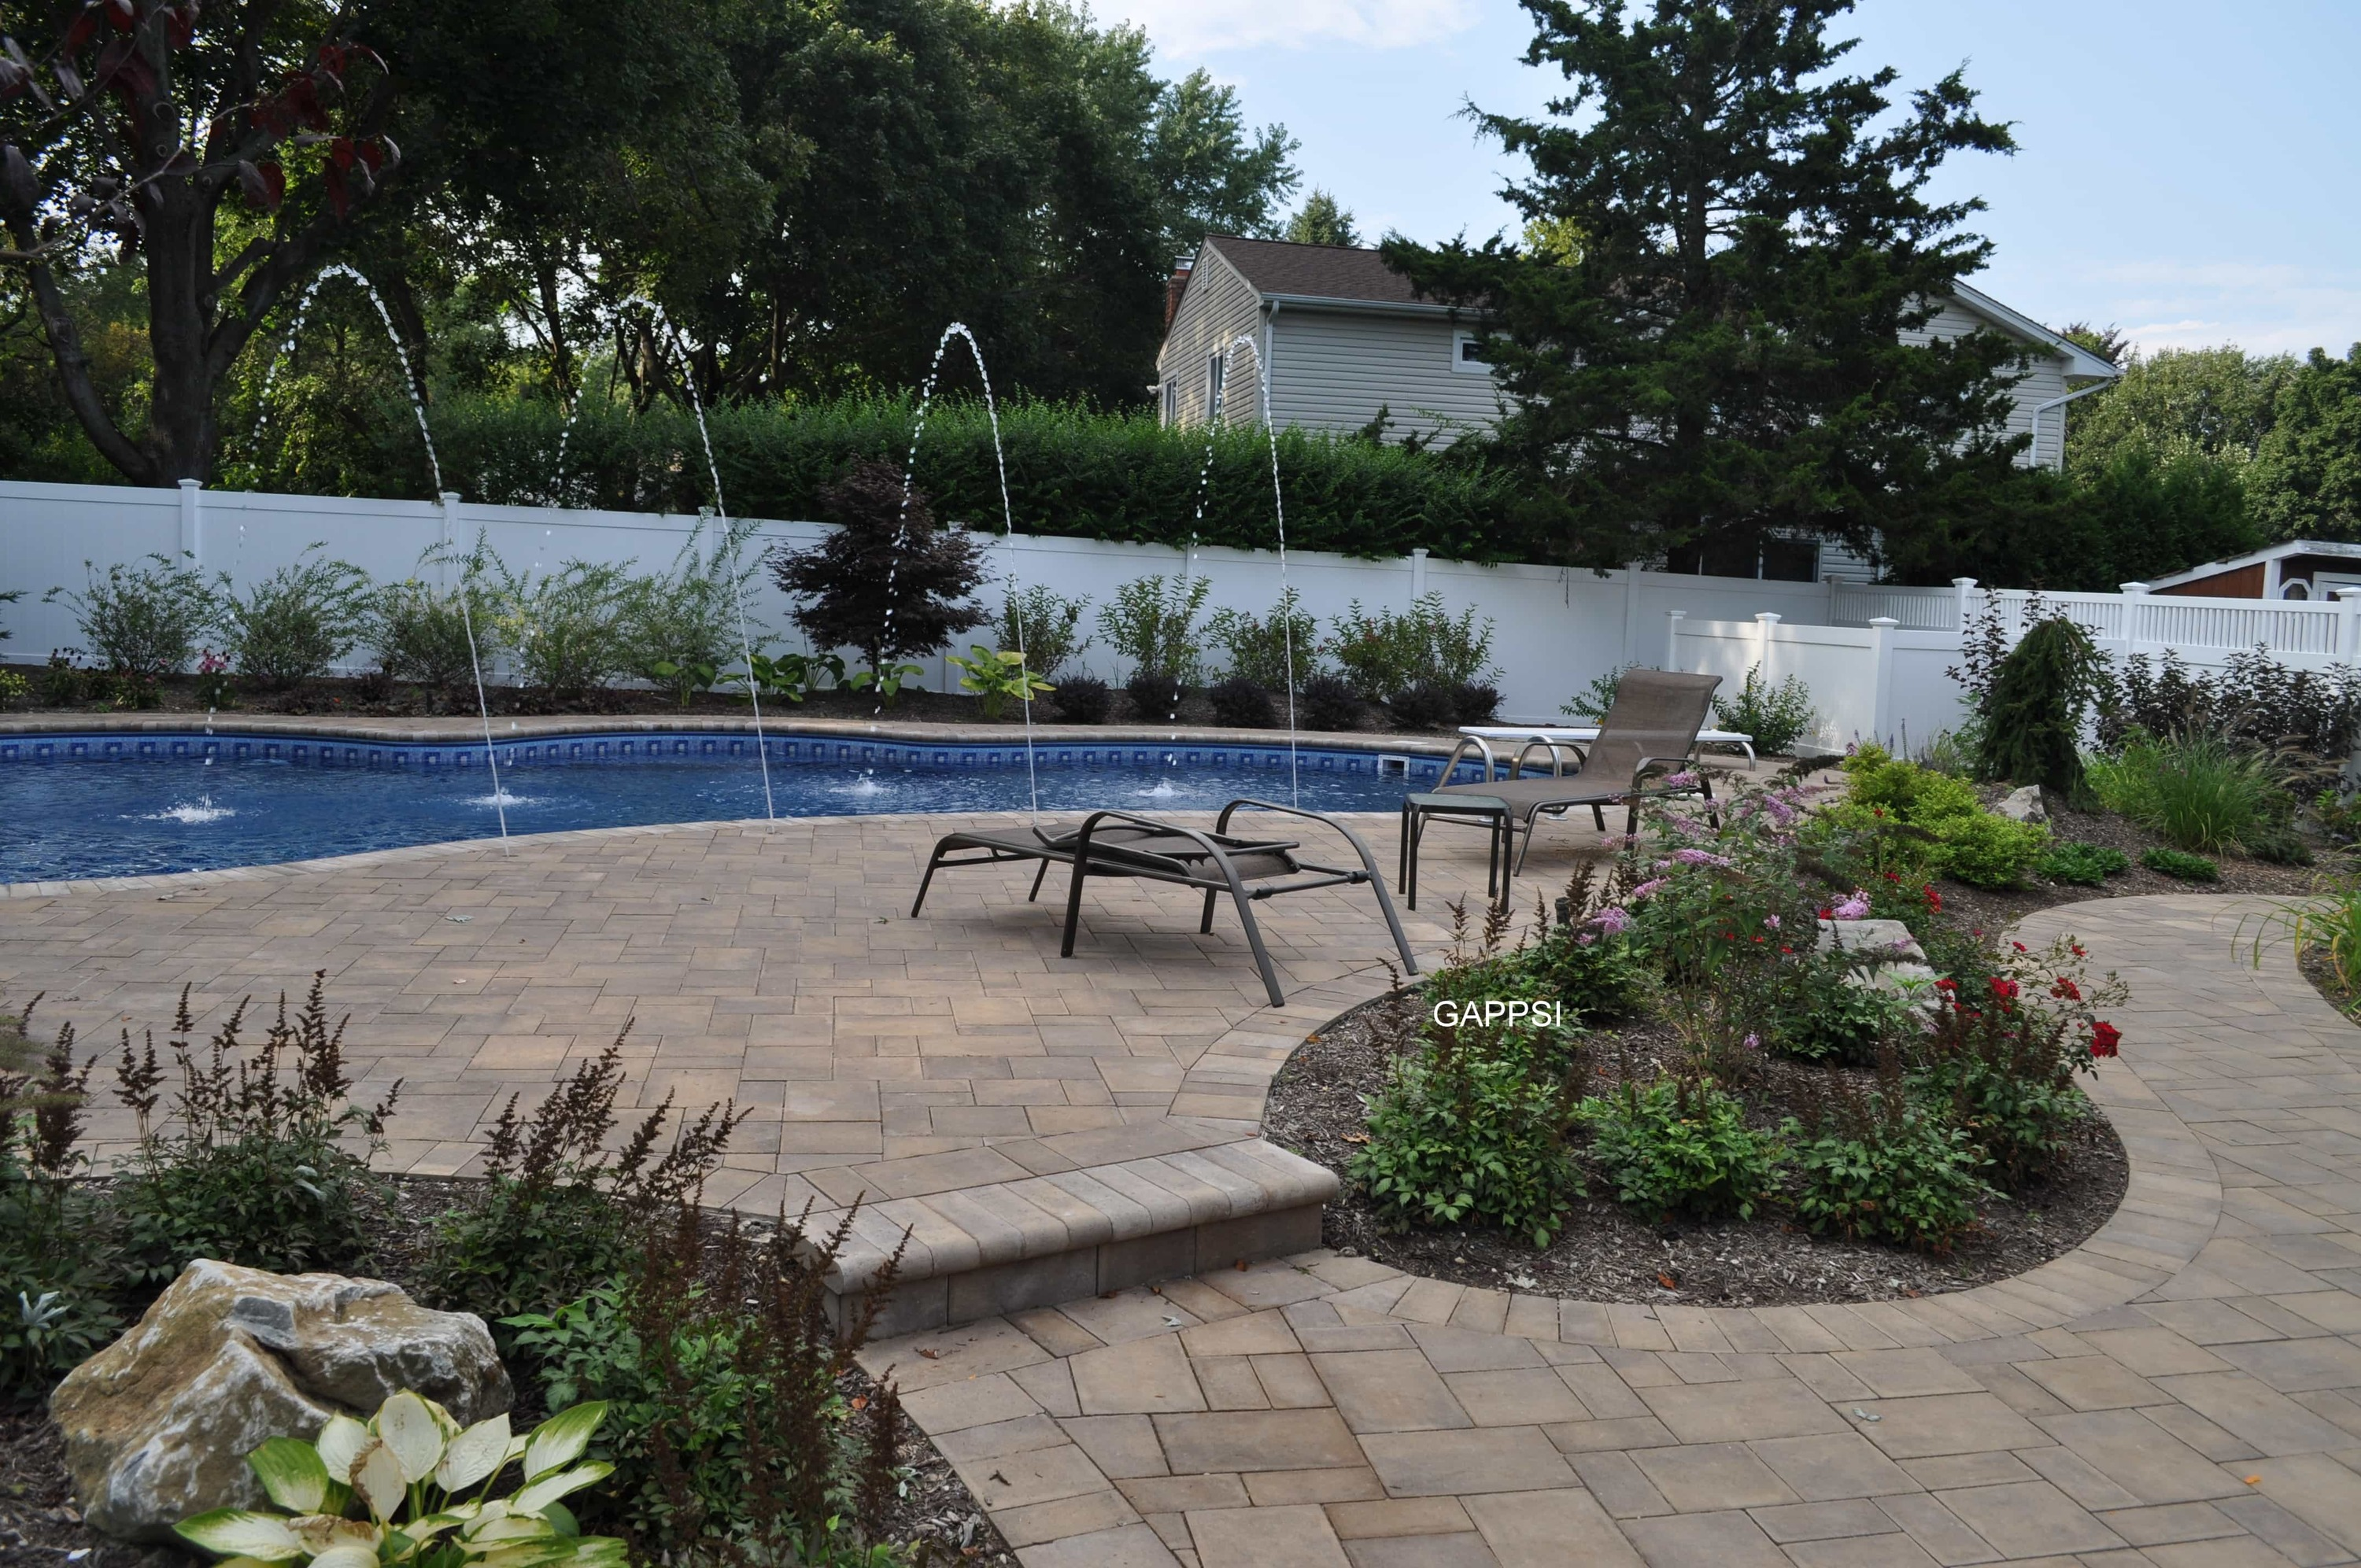 Cambridge Paving Stones And Full Nose Coping Were Used To Pave Pool And  Backyard Patio. To Learn More About Gappsi Products And Services Please  Contact Us ...